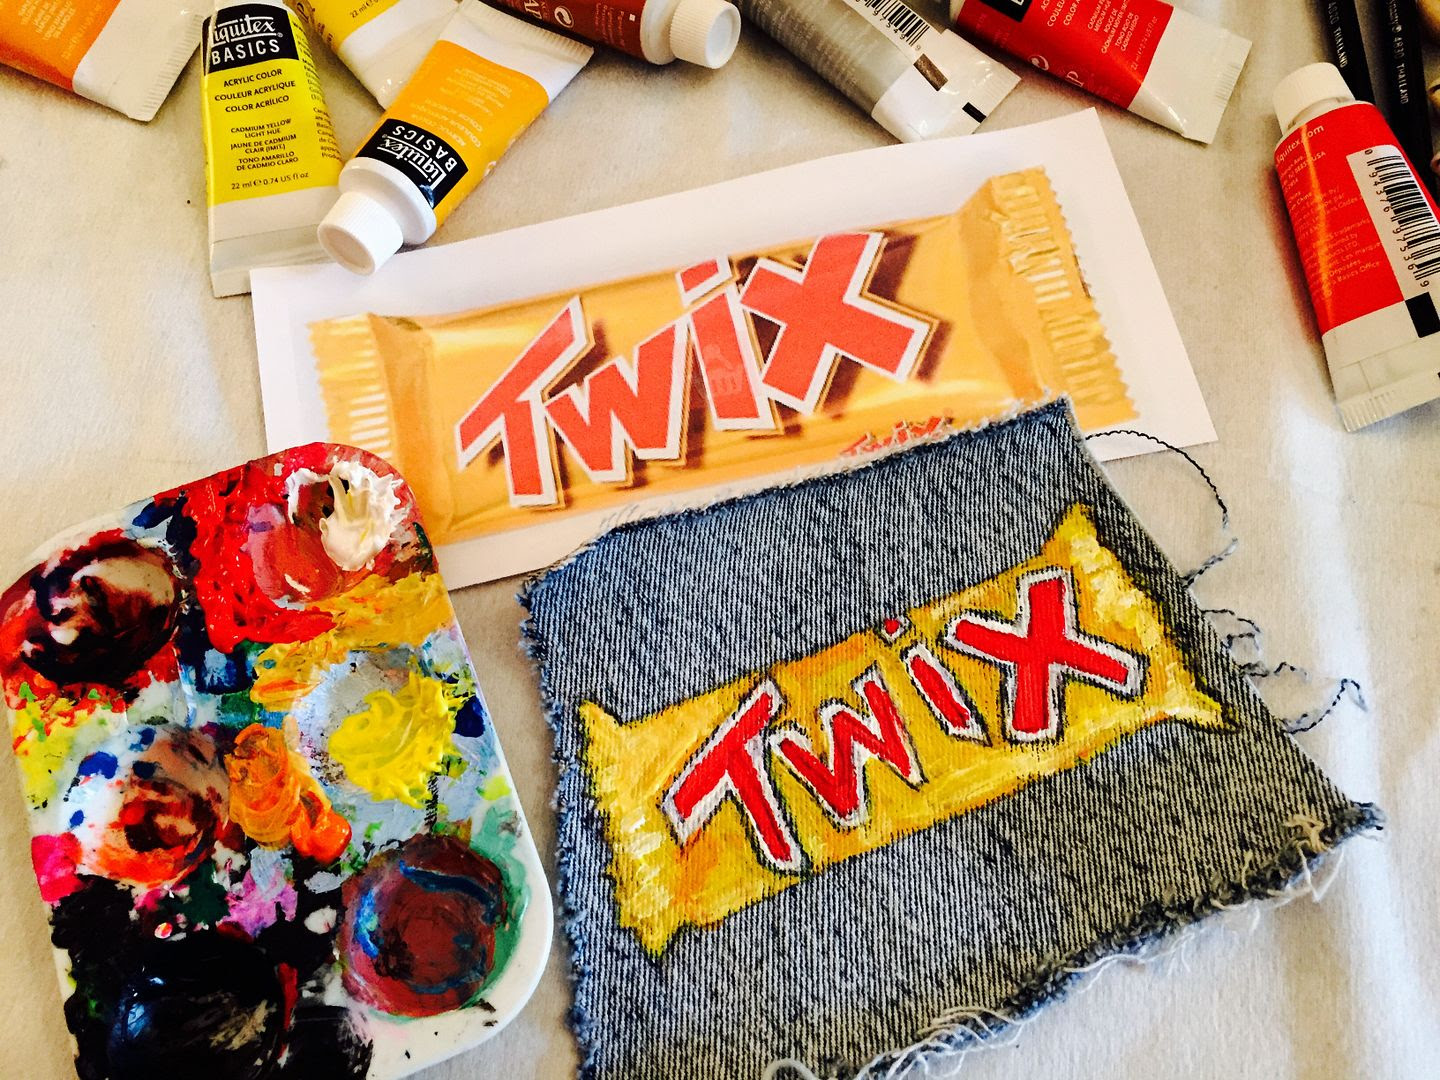 photo twix 4x6-beckermanblog-chocolate bar jeans- beckermandiy-commonthread-chocolate day_zpsajbjedjo.jpg